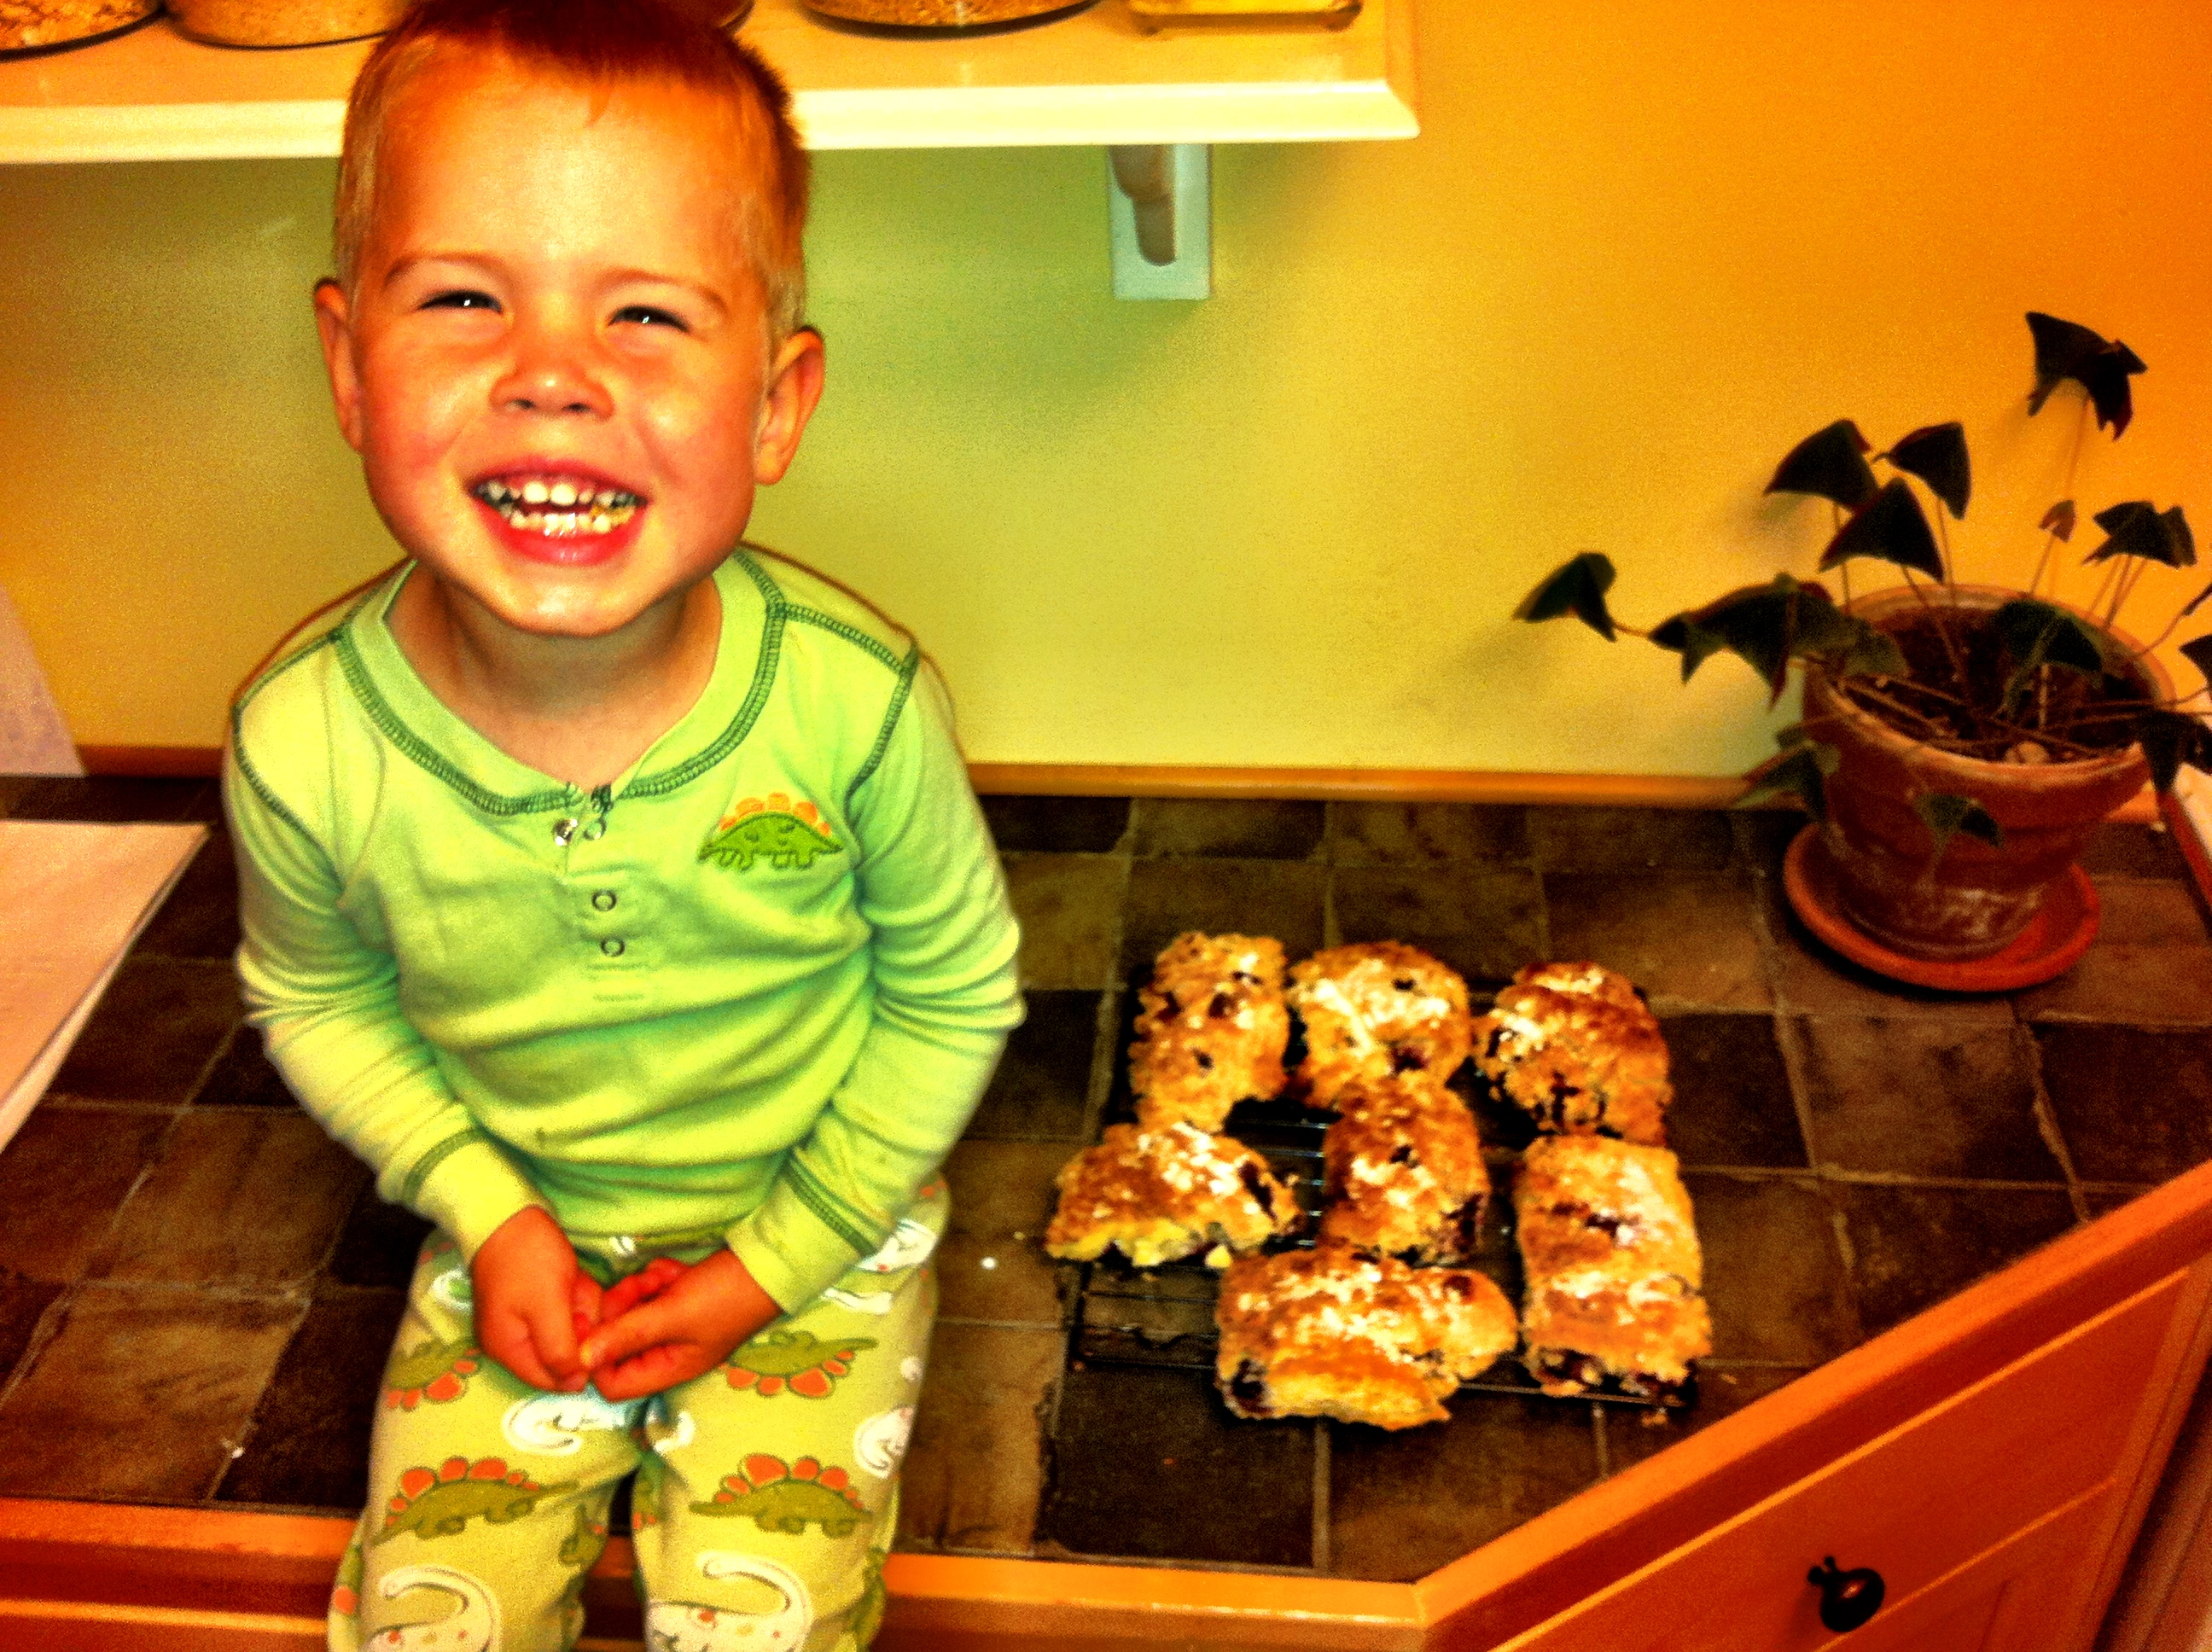 Cheffin' in the early days. Kale was three in this picture, and was very proud of the scones he made with Dad.